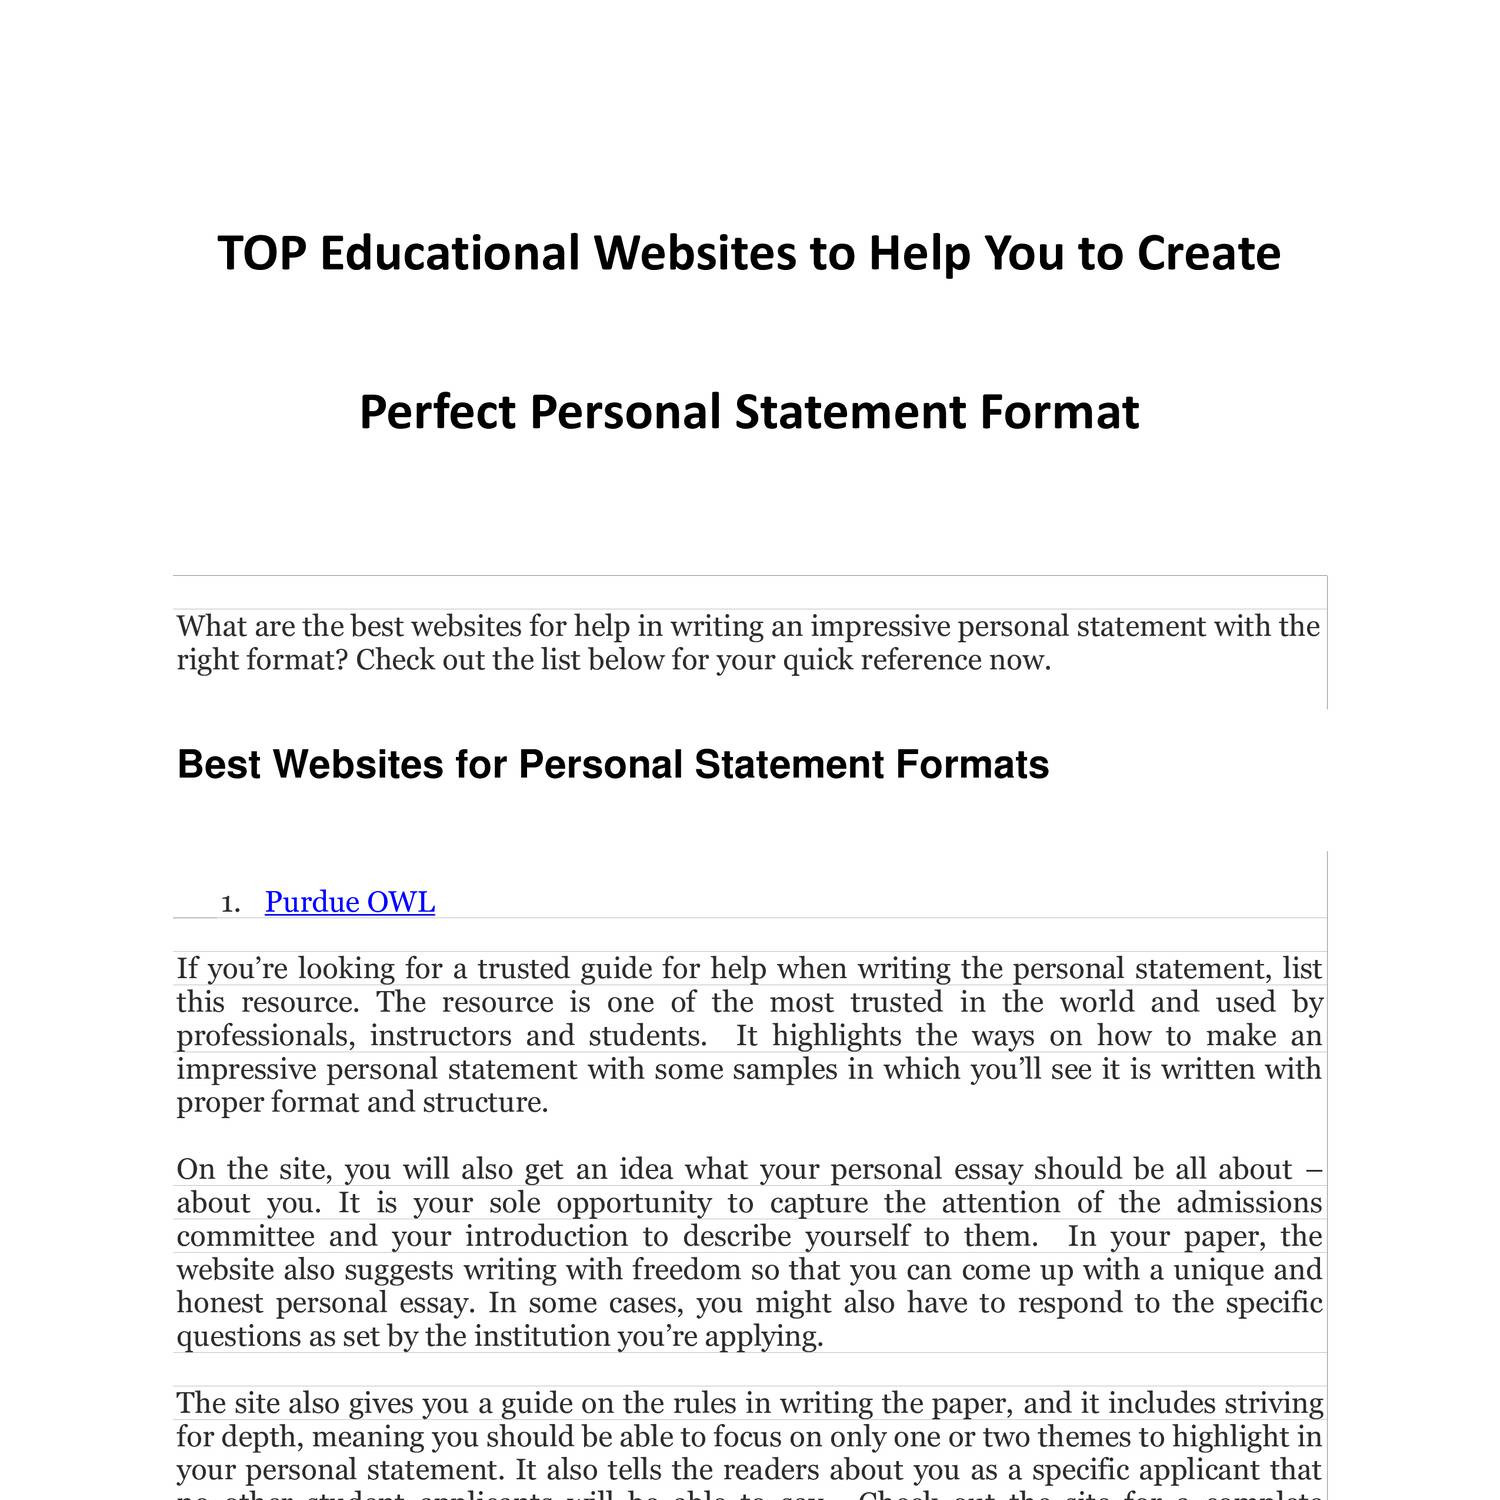 TOP Educational Websites to Help You to Create Perfect Personal